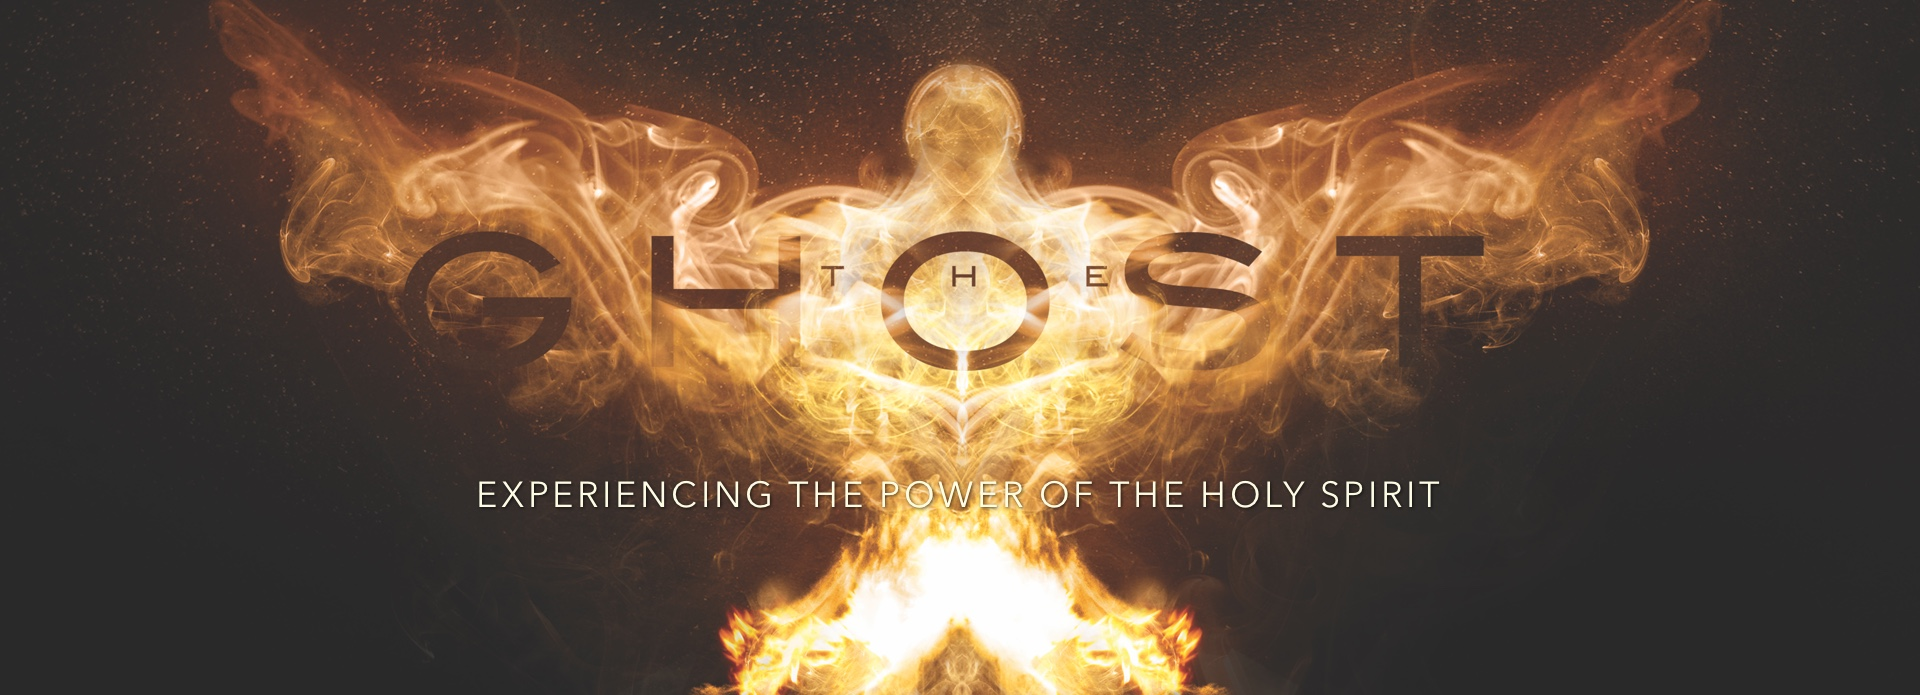 The Ghost: Experiencing the Power of the Holy Spirit